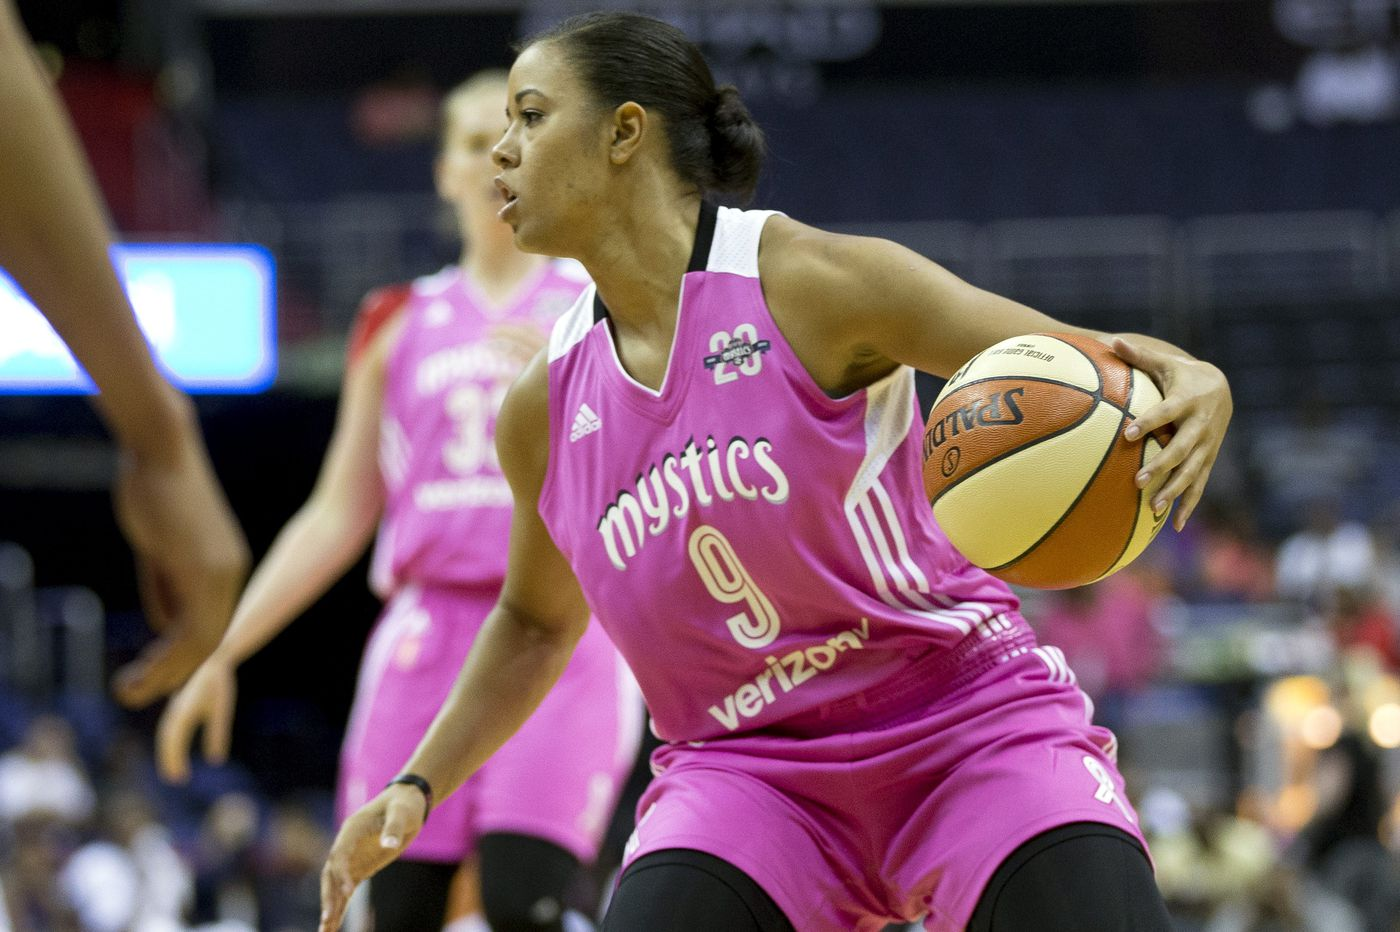 Former St. Joseph's star Natasha Cloud wants to stay in D.C. and is giving Mystics reasons to keep her